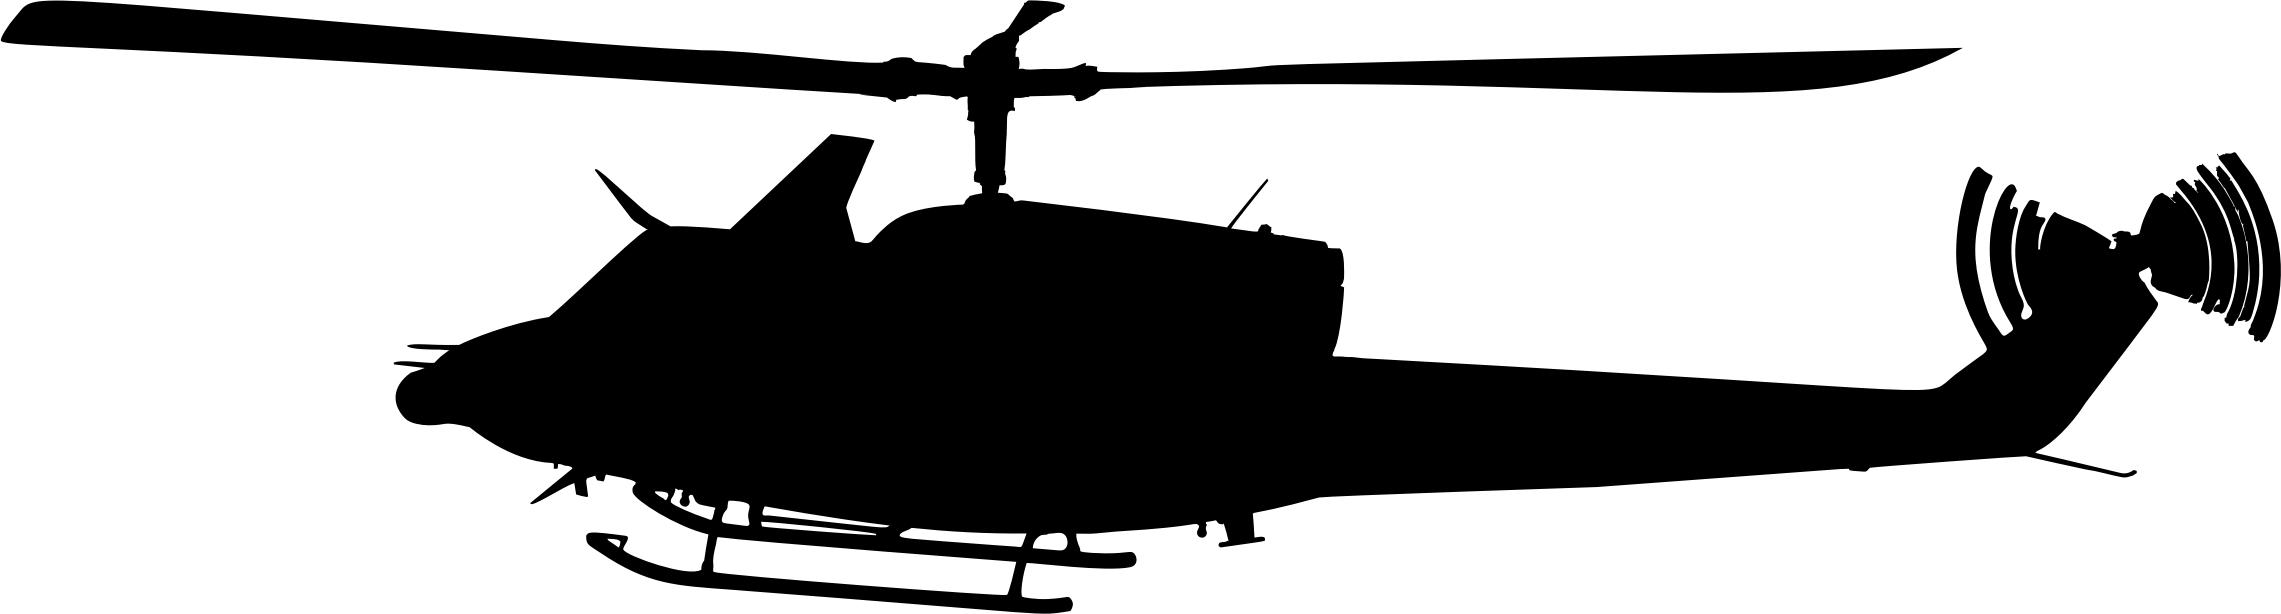 2281x614 Free Helicopter Icons Png, Hel Copter Images